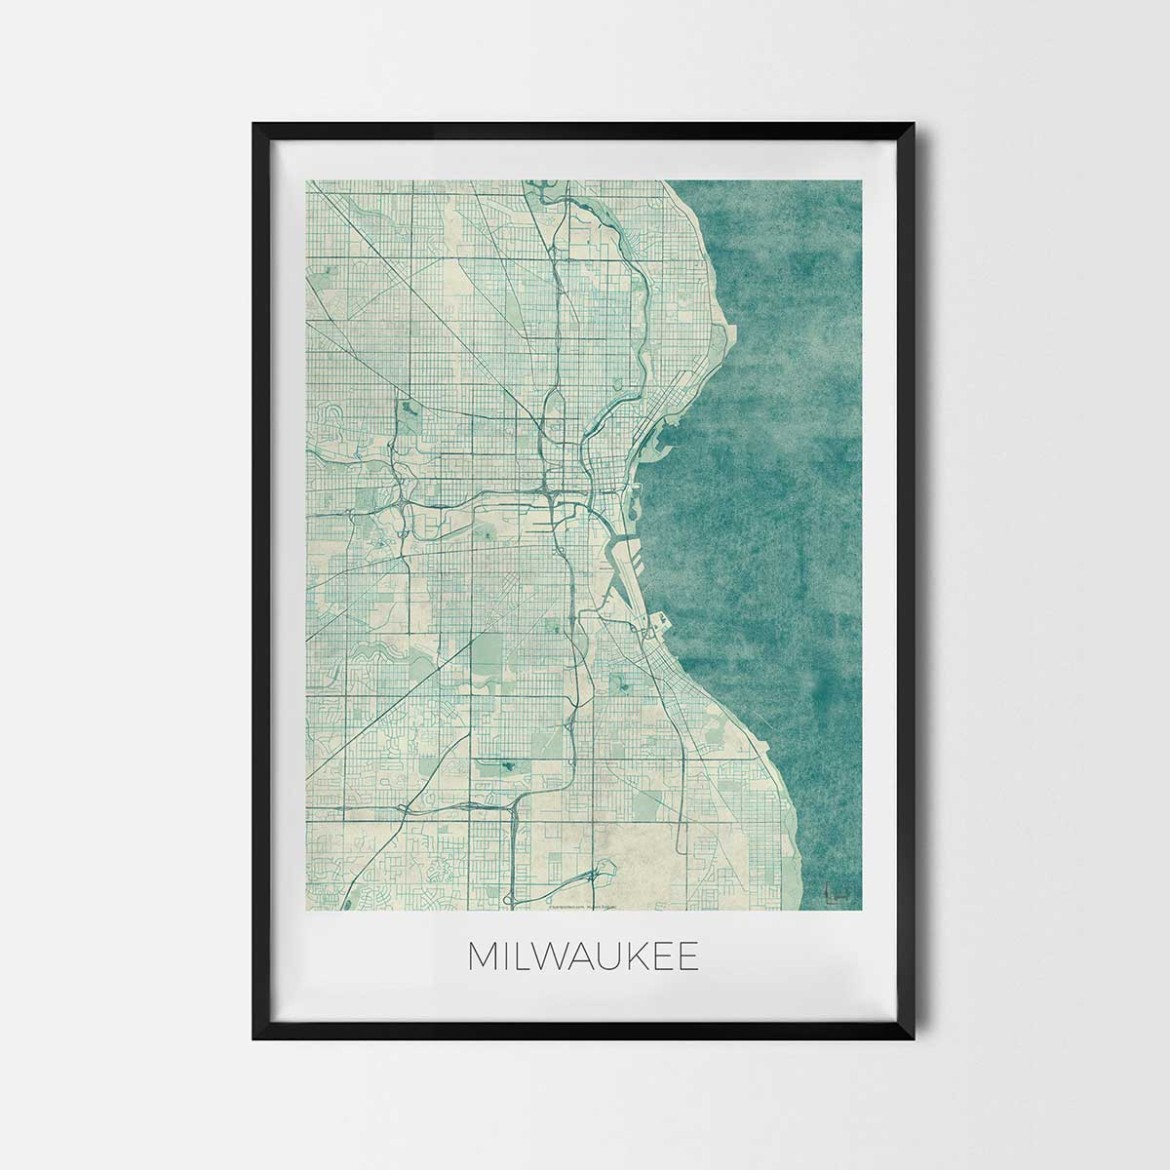 Milwaukee gift map art prints and posters home decor gifts House map drawing images